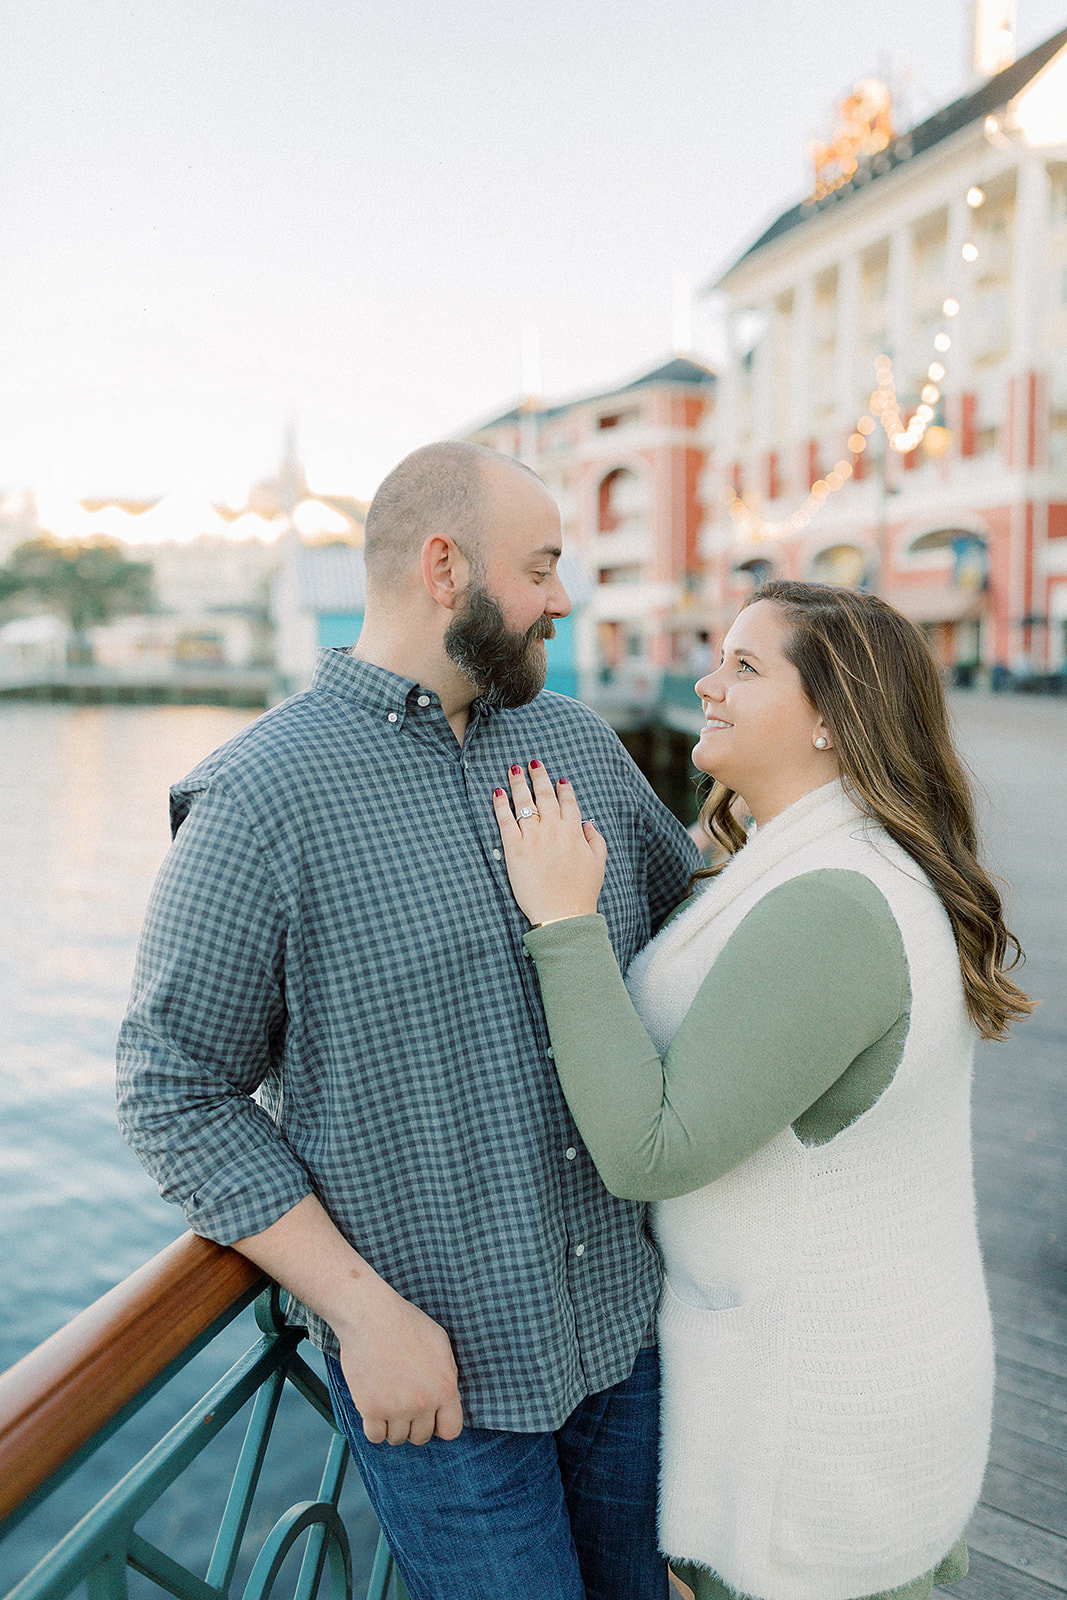 Larisa_+_Craig_Disney_Epcot_Boardwalk_Resort_Engagement_Session_Photographer_Casie_Marie_Photography-70